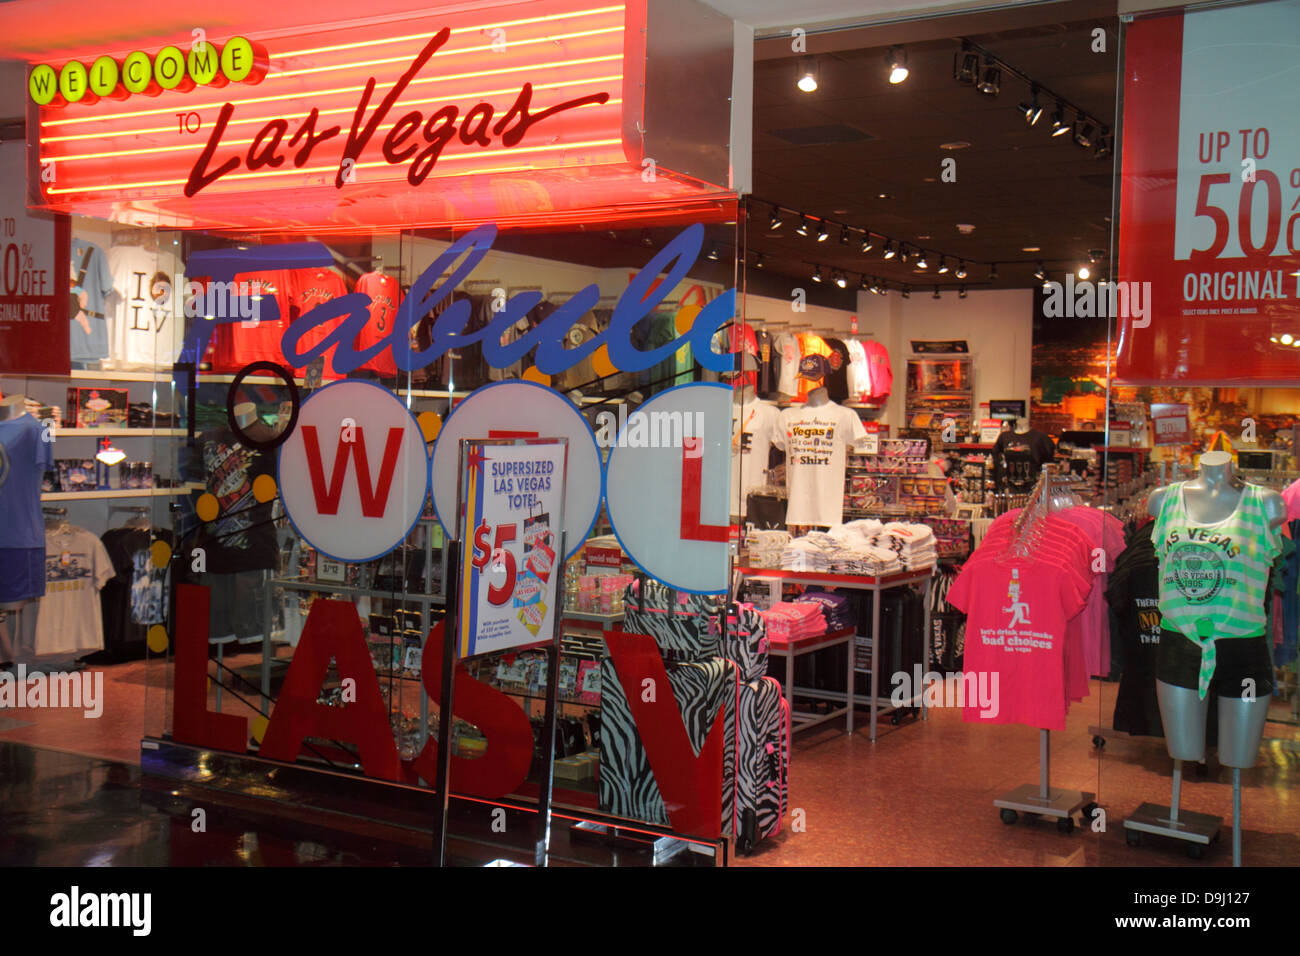 Necessary Las vegas stripper clothes recommend